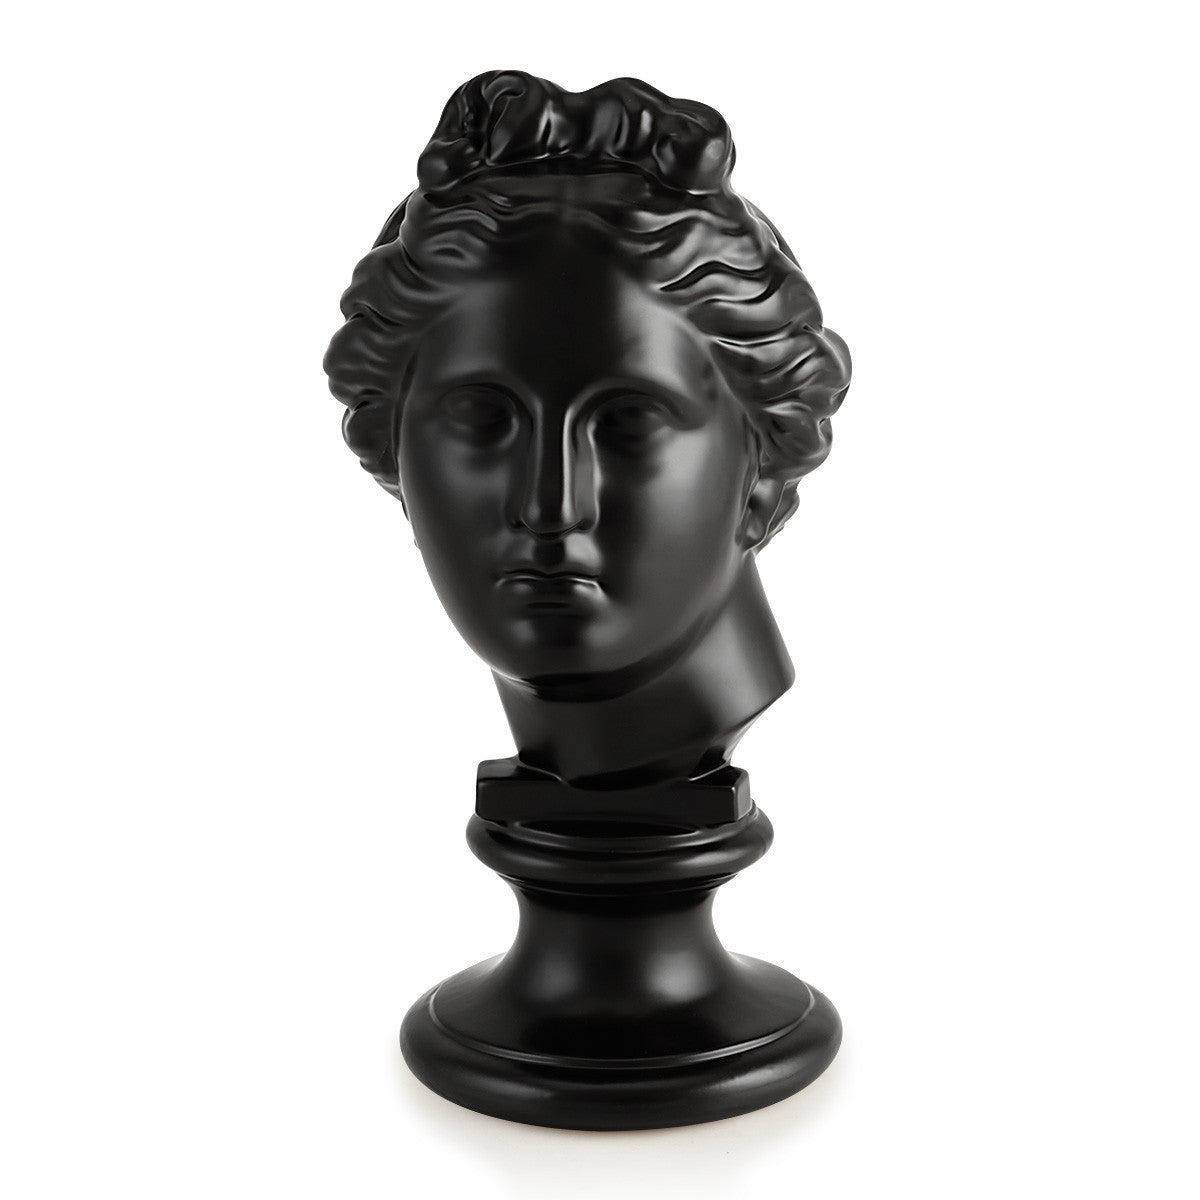 Black ceramic greek bust statue